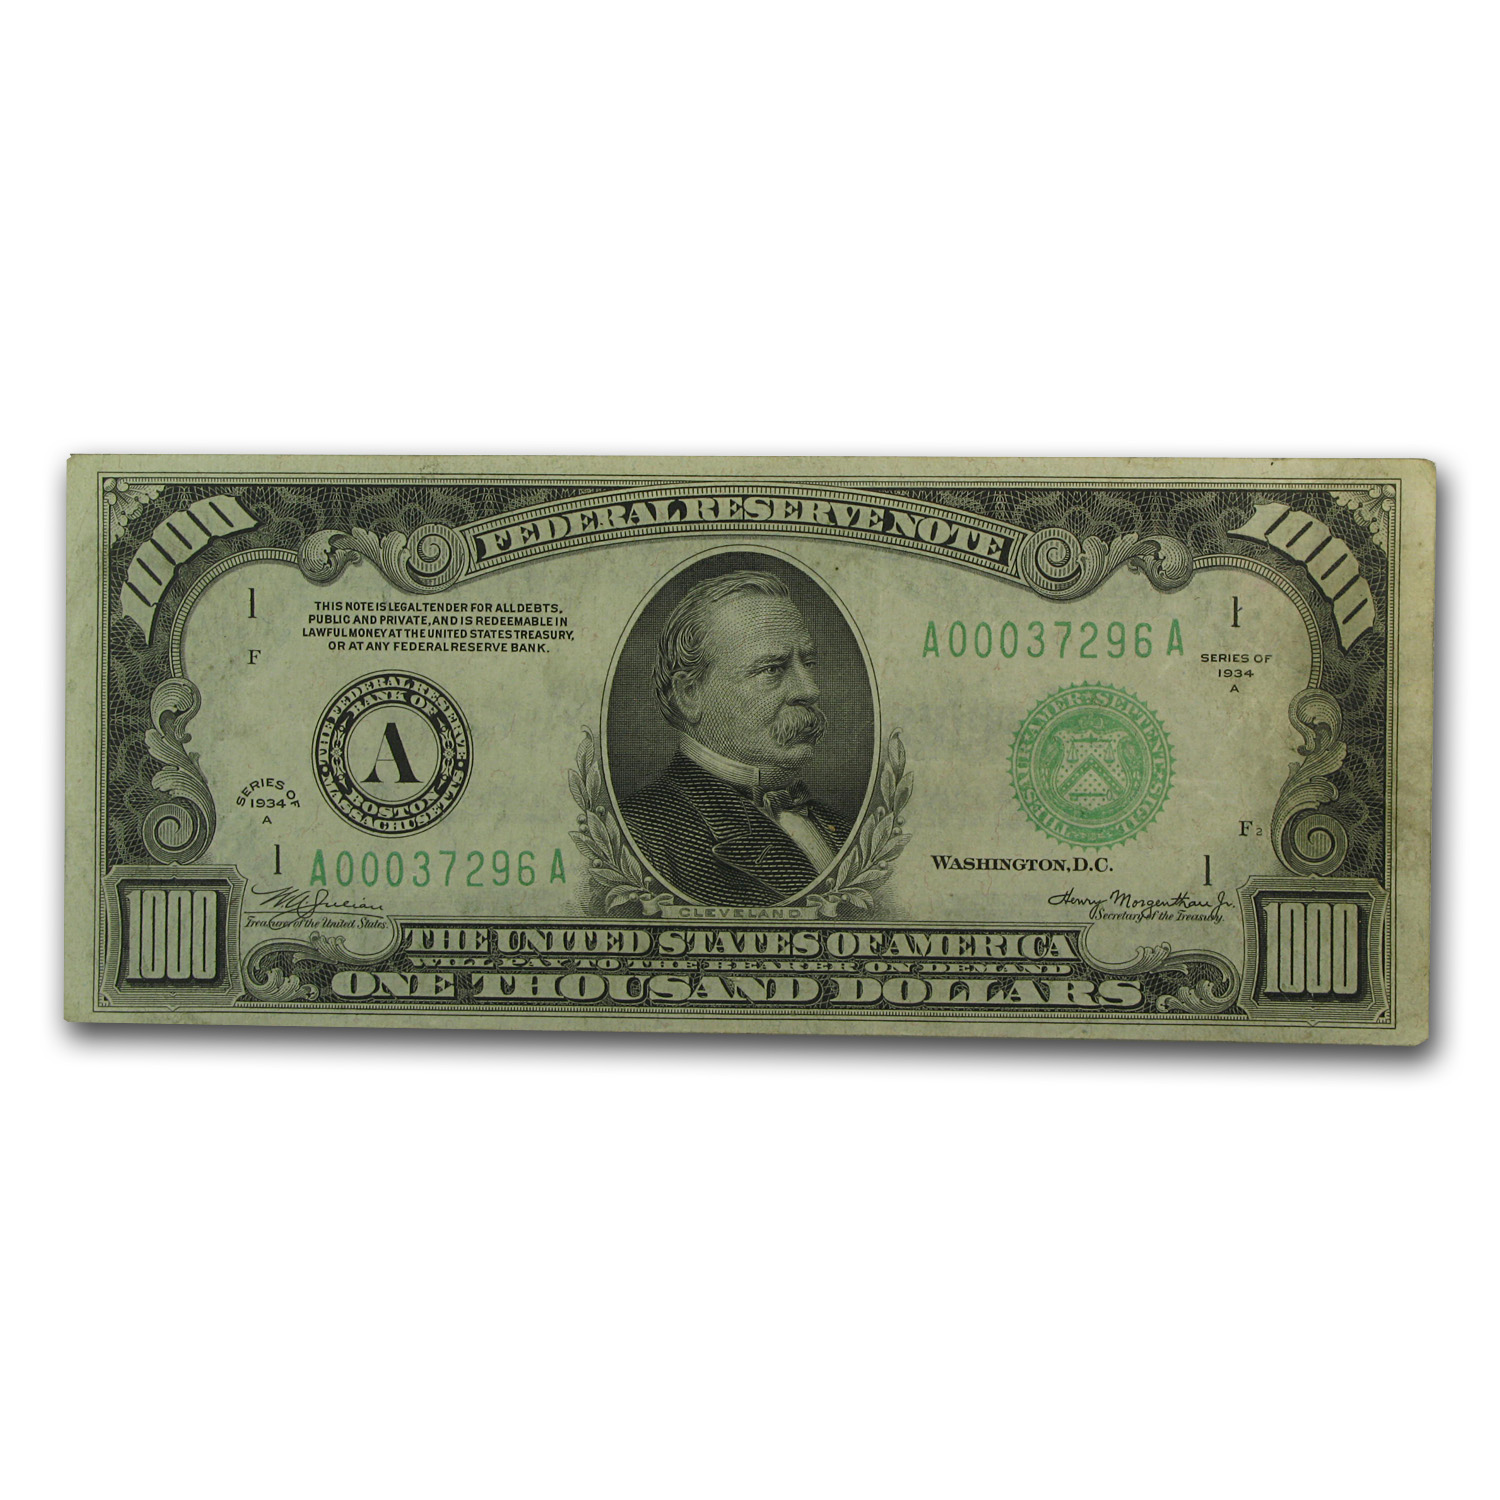 1934-A (A-Boston) $1,000 FRN VF+